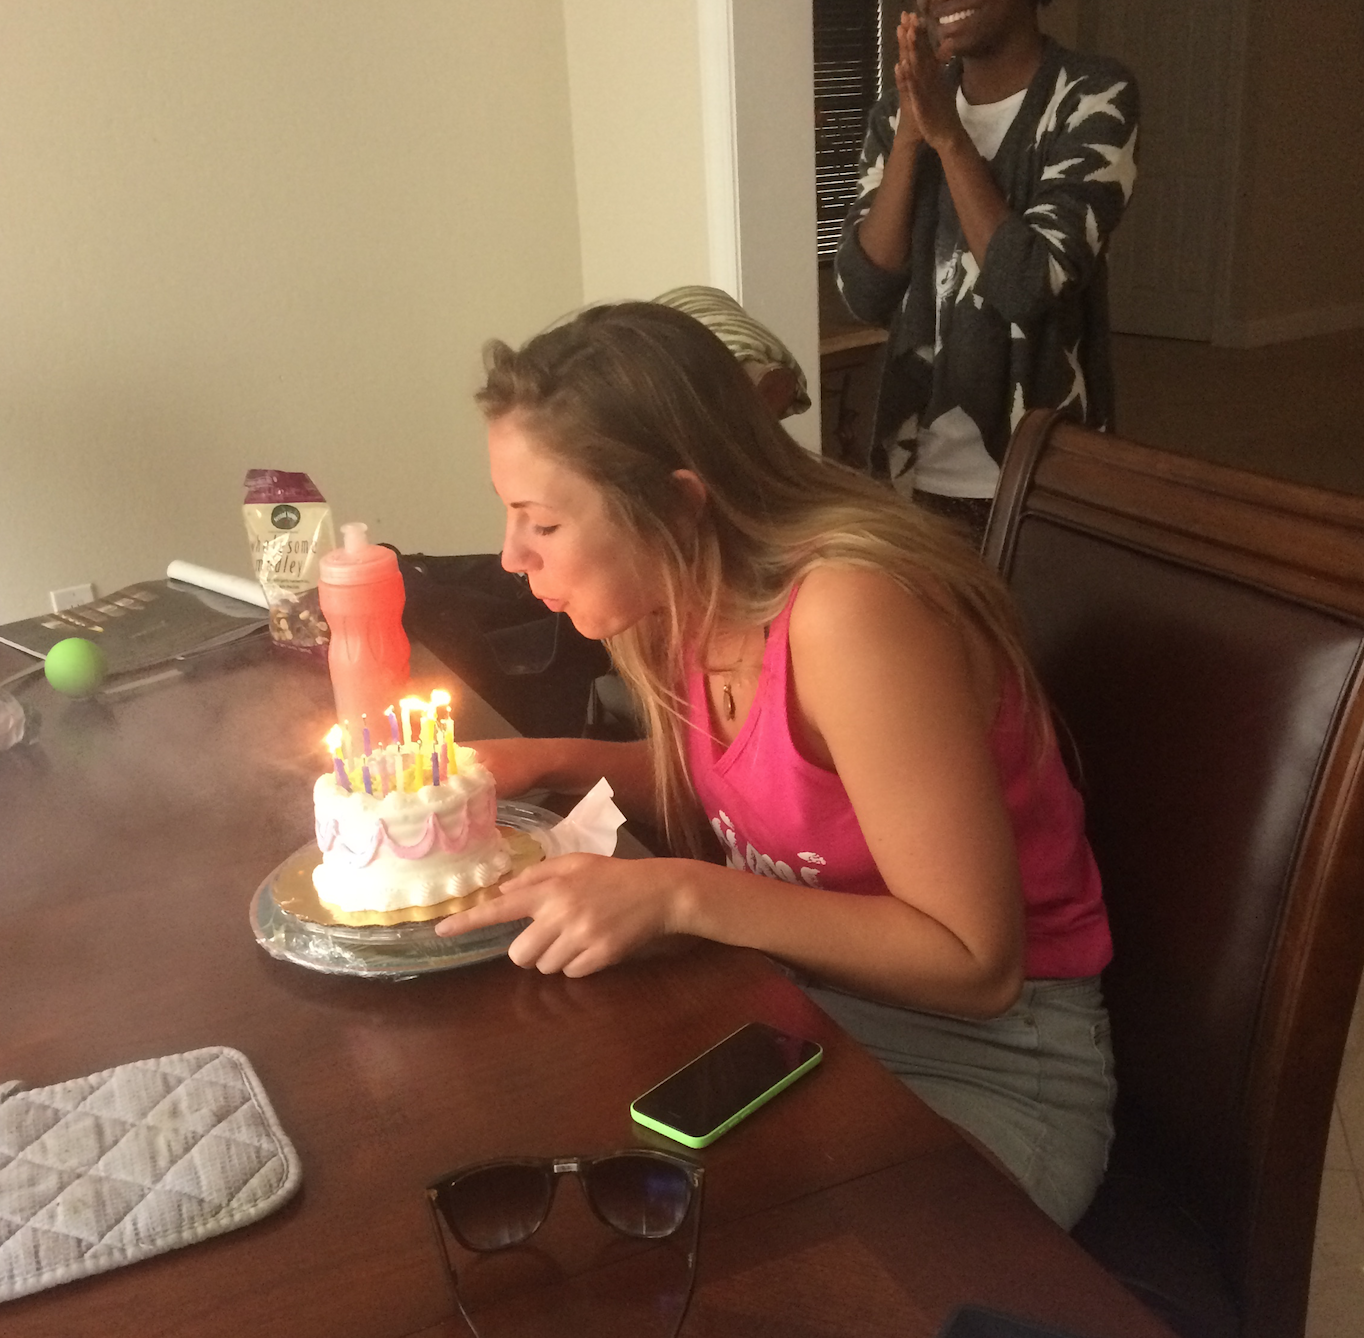 We had a 21st birthday in the house!